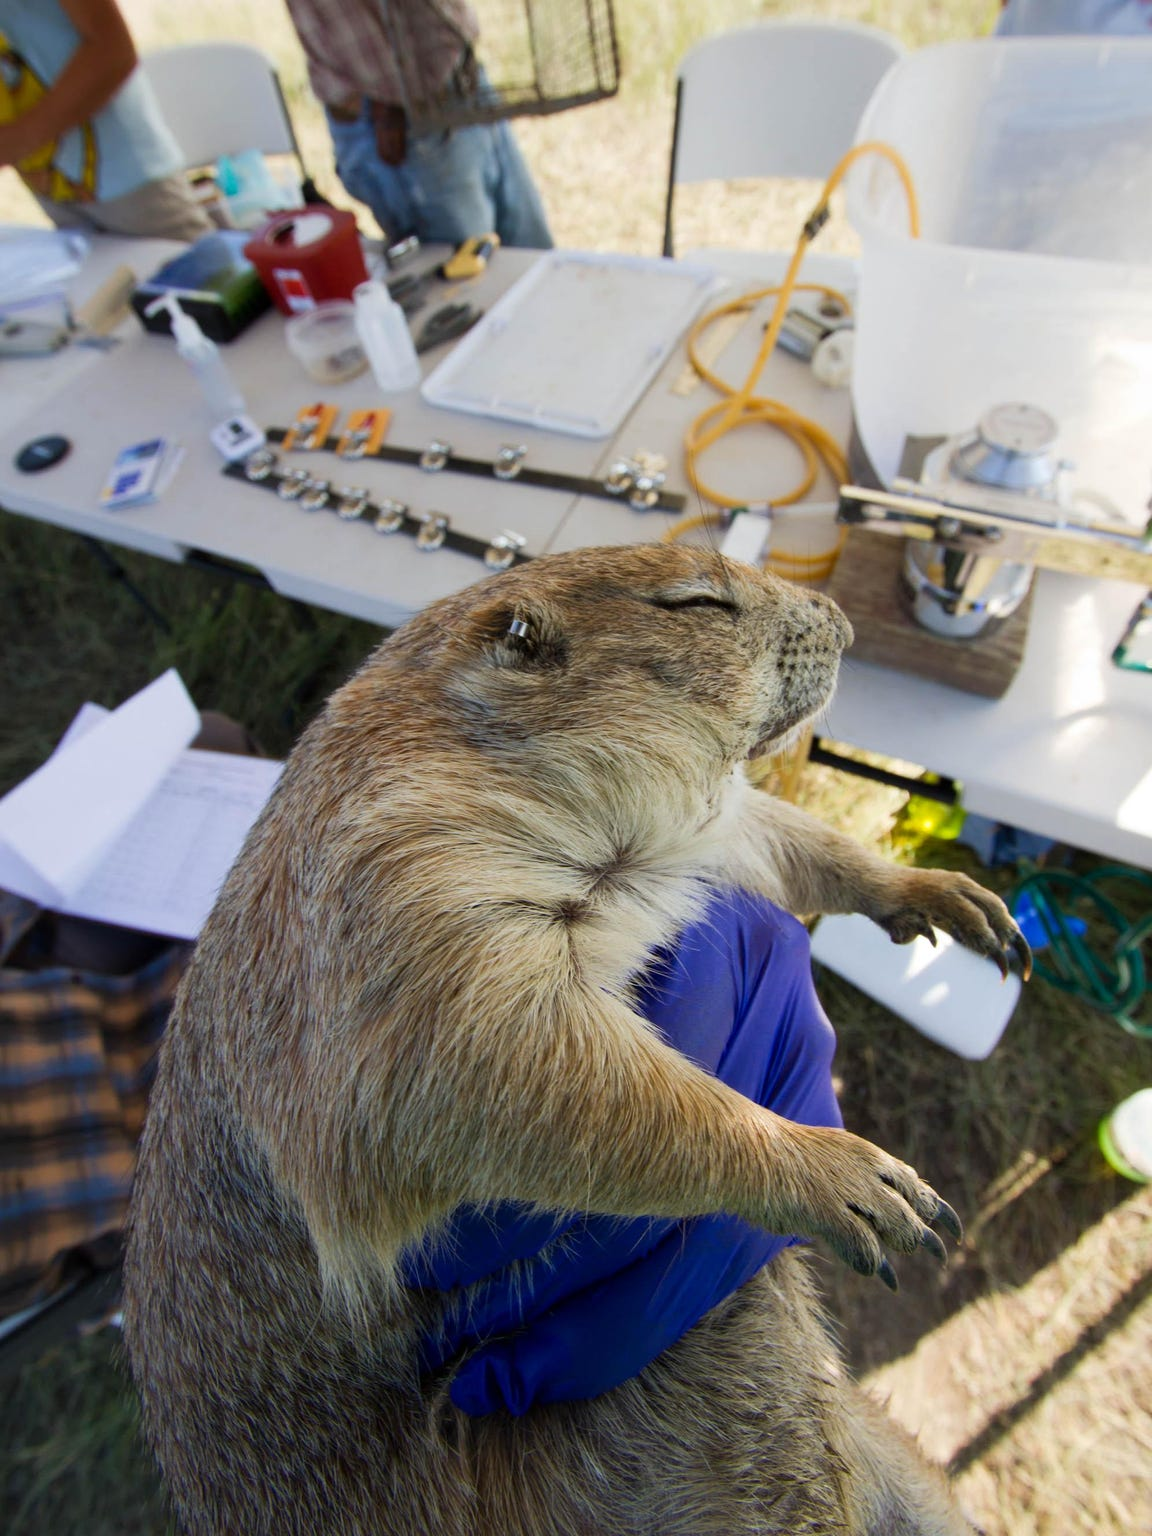 A processed prairie dog recovers from isoflurane gas